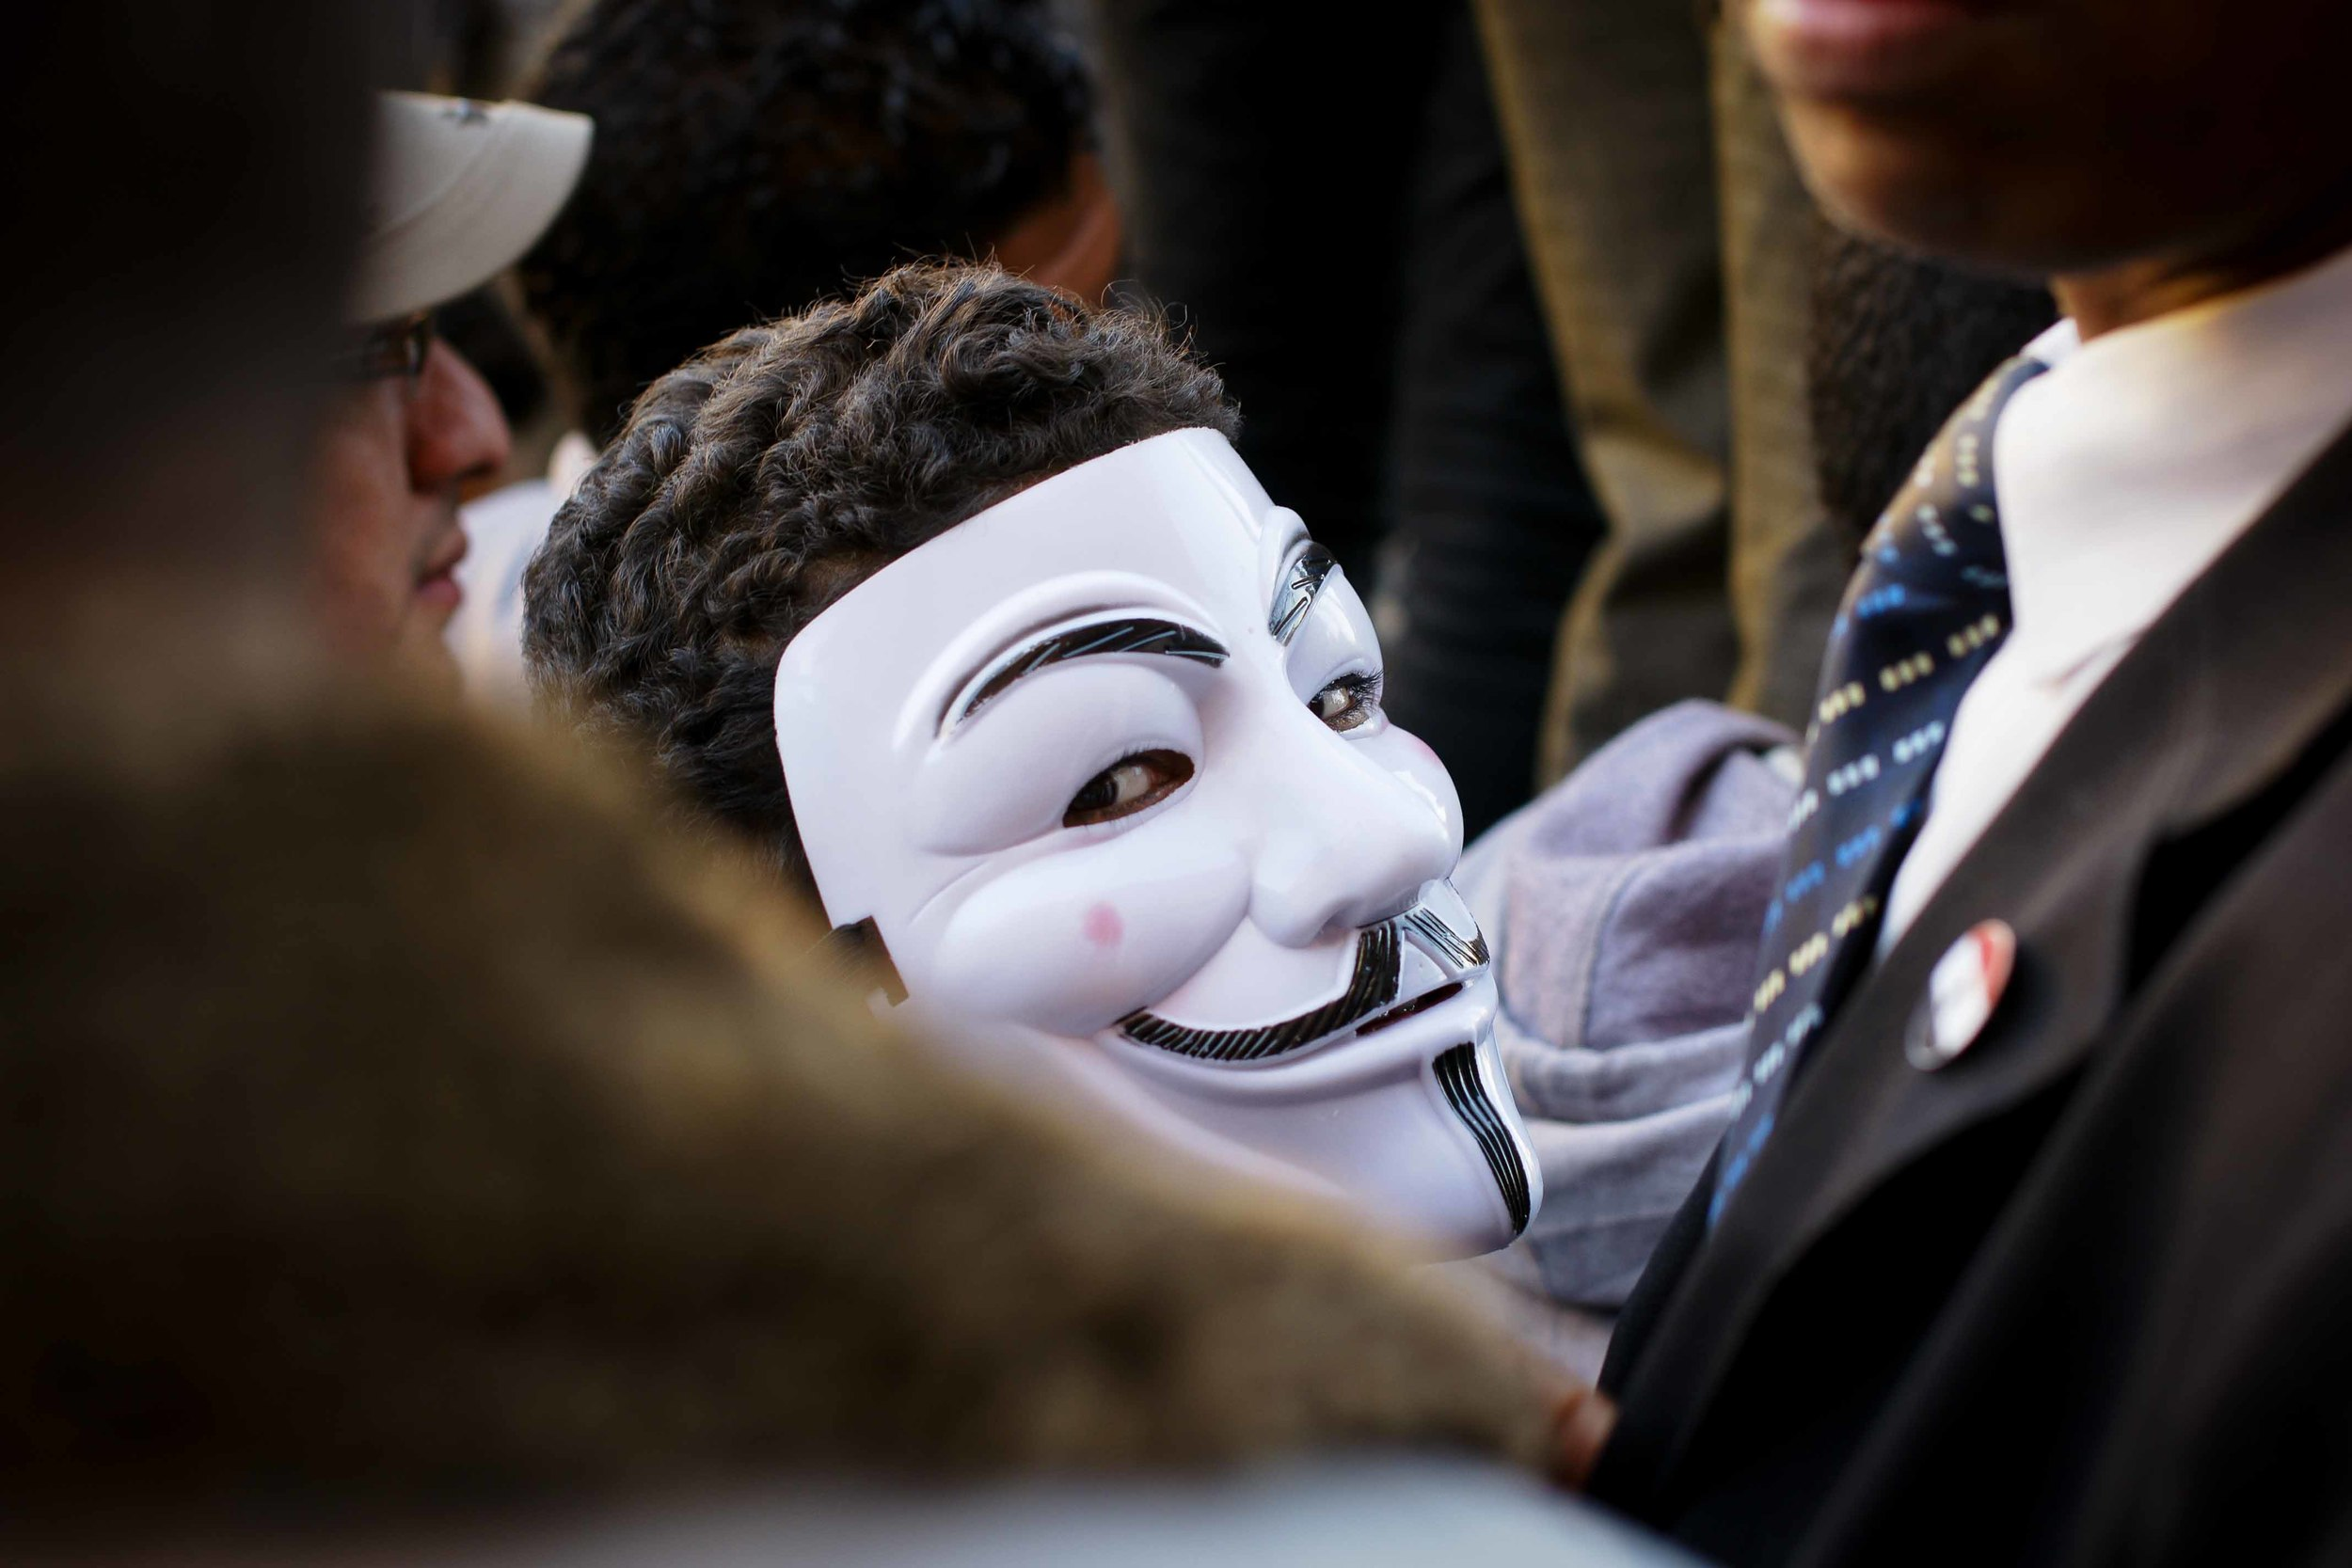 A protestor in a Guy Fawkes mask stands at the barricade erected by the military. Many protestors wear the masks, reminiscent of the movie 'V for Vendetta.'